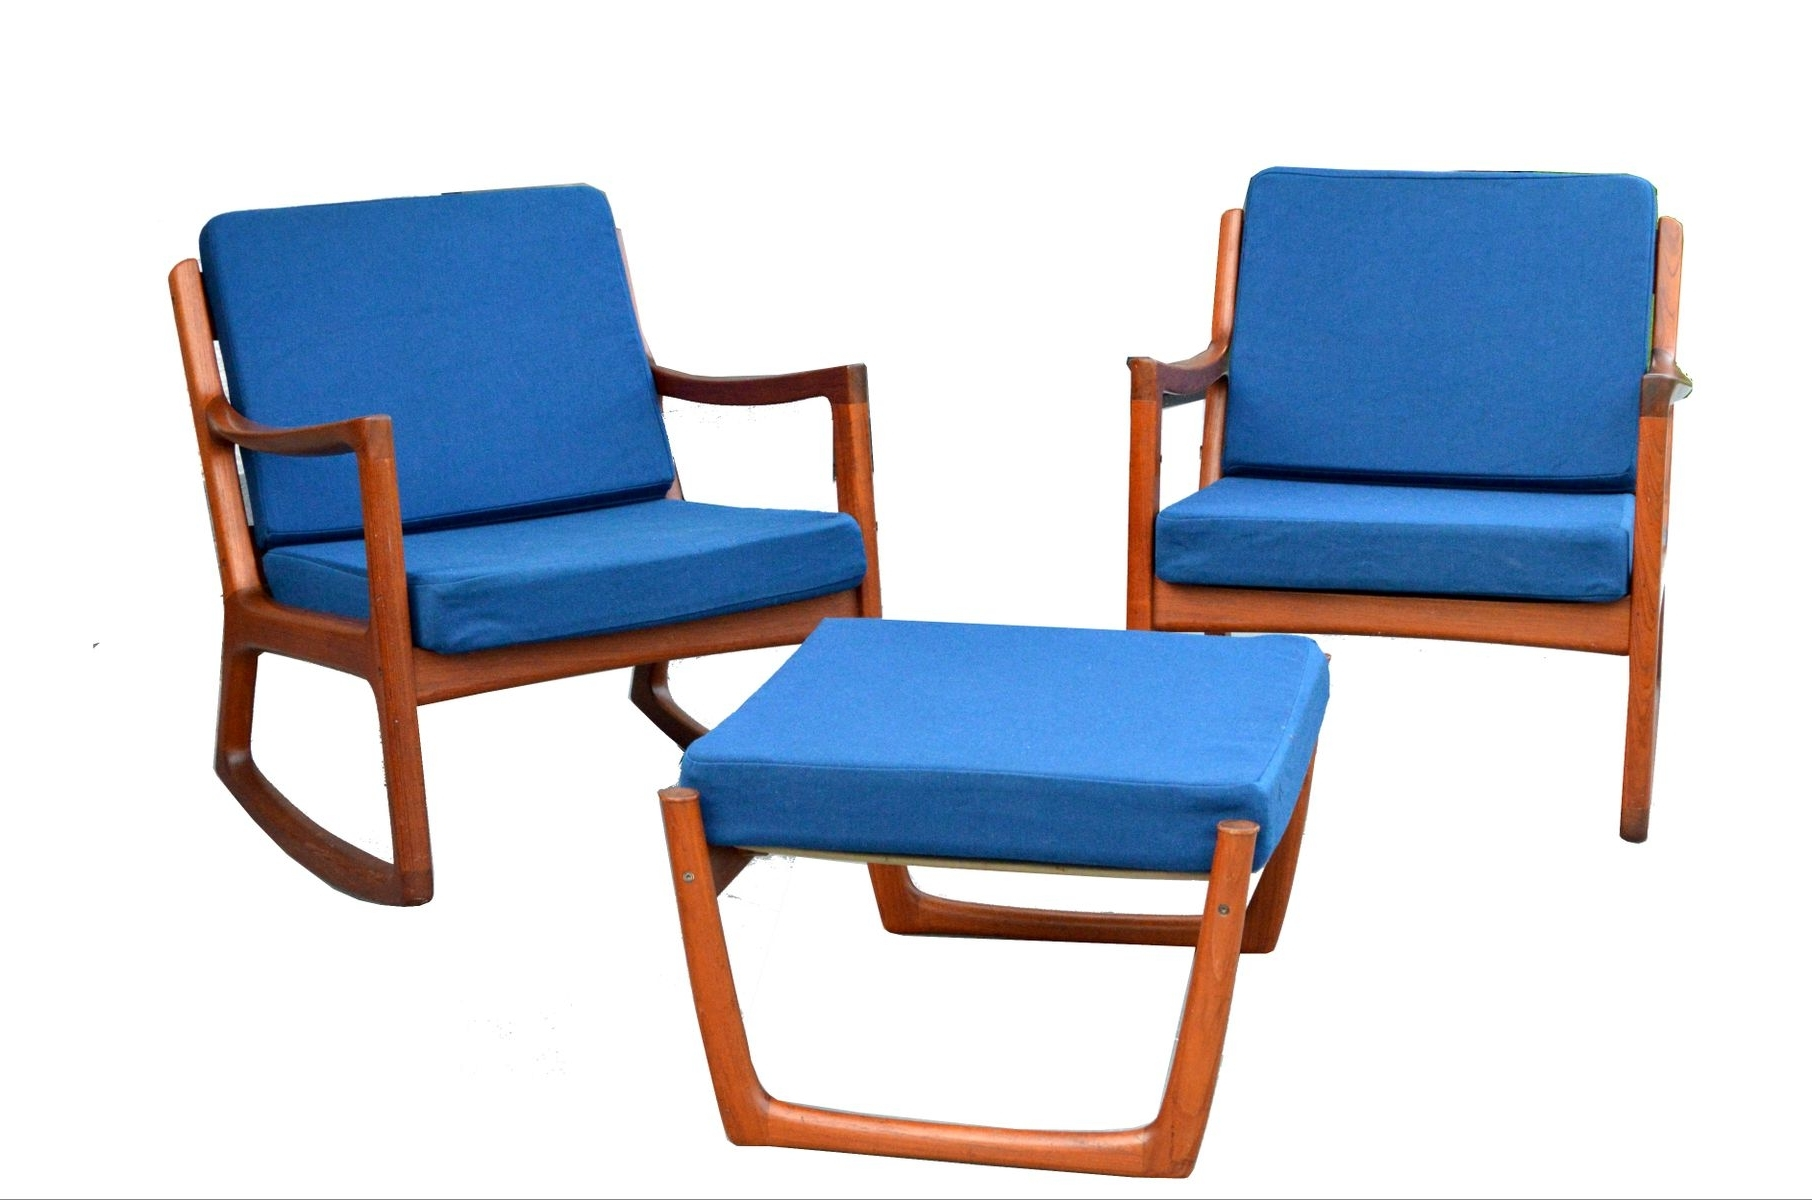 Most Current Rocking Chairs With Footstool Intended For 2 Senator Rocking Chairs & 1 Footstoolole Wanscher For France (View 9 of 15)